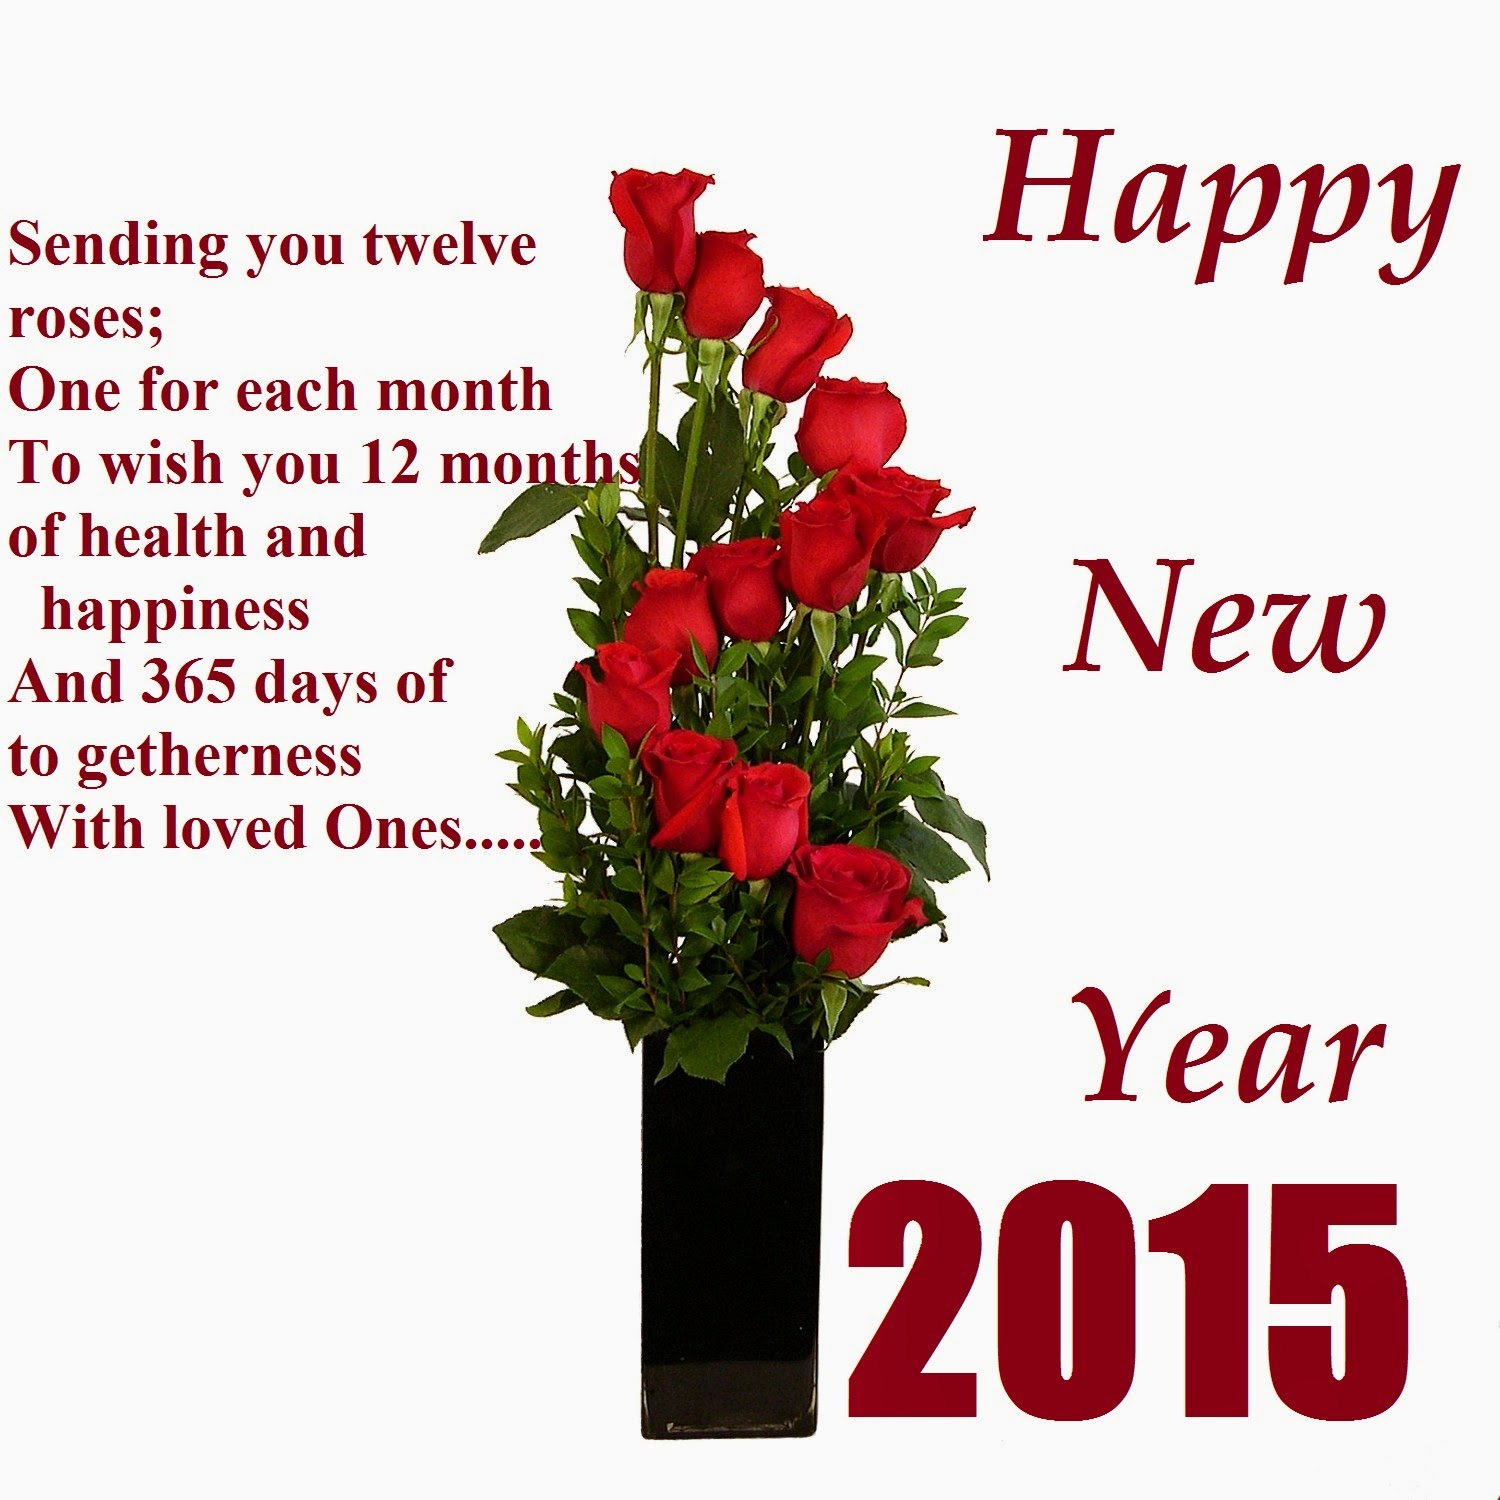 Happy new year 2015 greetings wishes roses wallpaper m4hsunfo